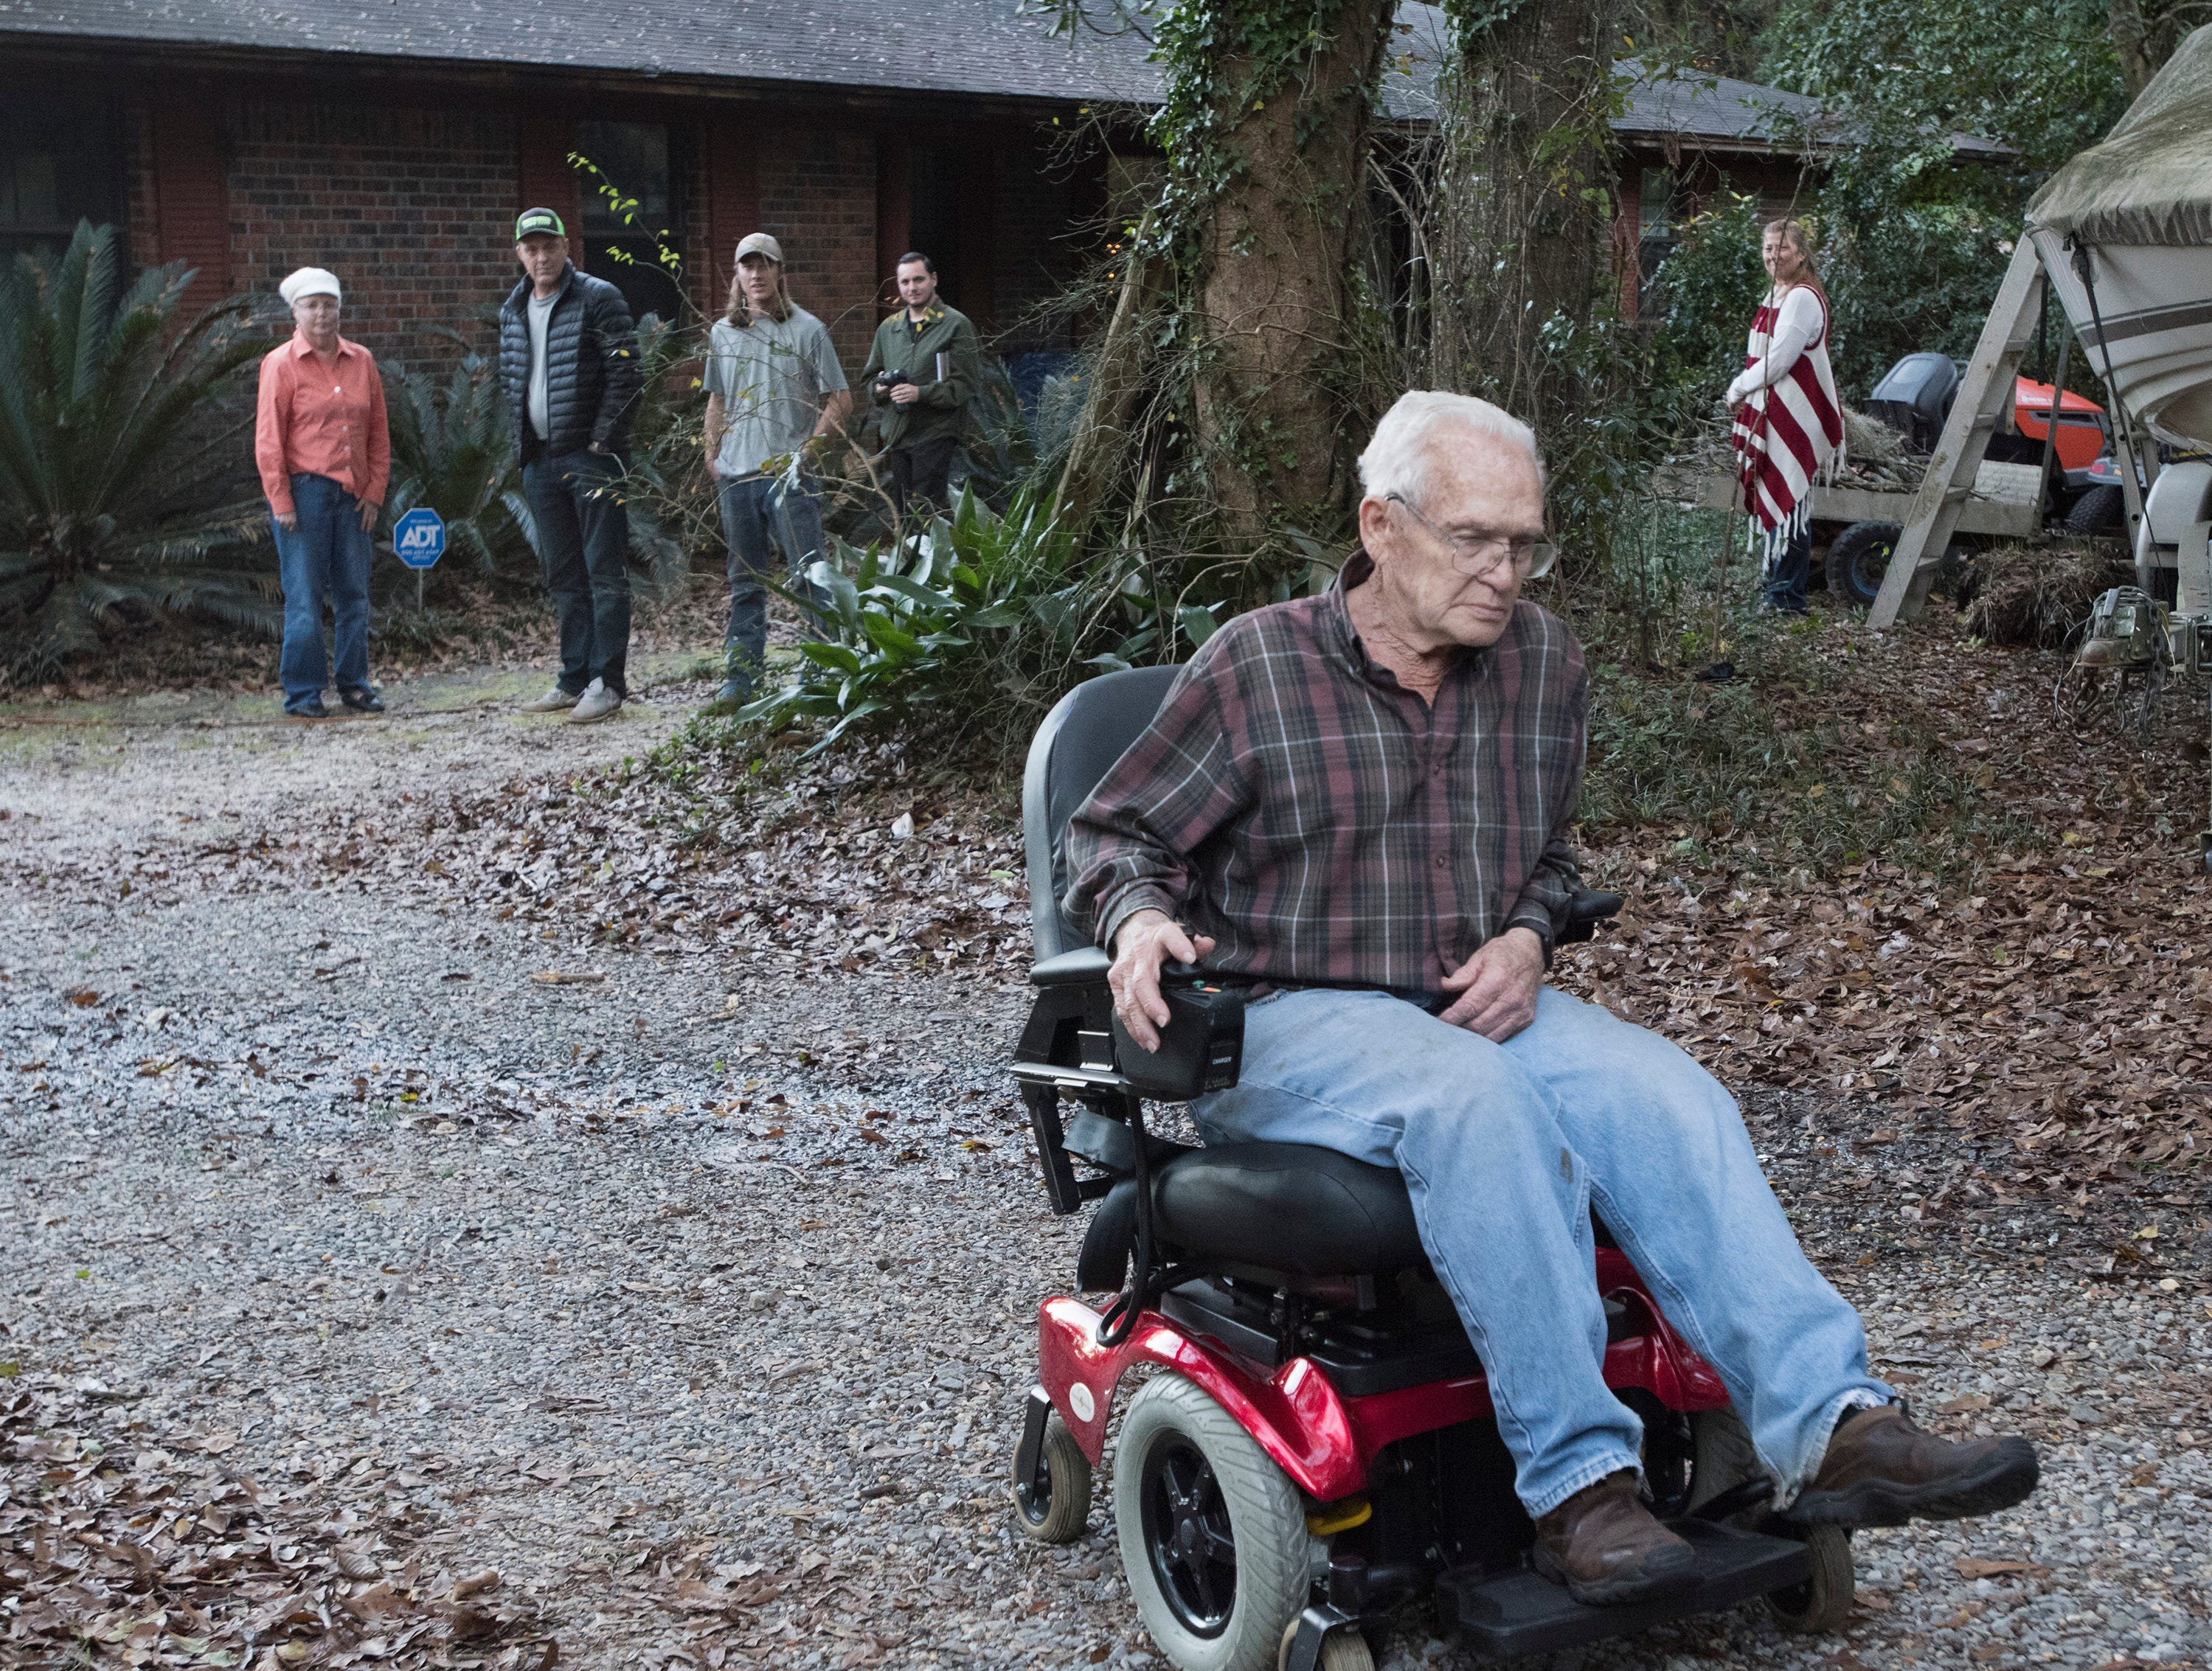 East Milton resident, Jim Blazier, takes his new motorized chair for a spin outside his home on Friday, Jan. 4, 2019, while his wife Phyllis, and Rick Beech, and others look on.  Blazier and his wife received the restored chair as a gift from Rick Beech, the owner of Beech Boys Lawn Care.